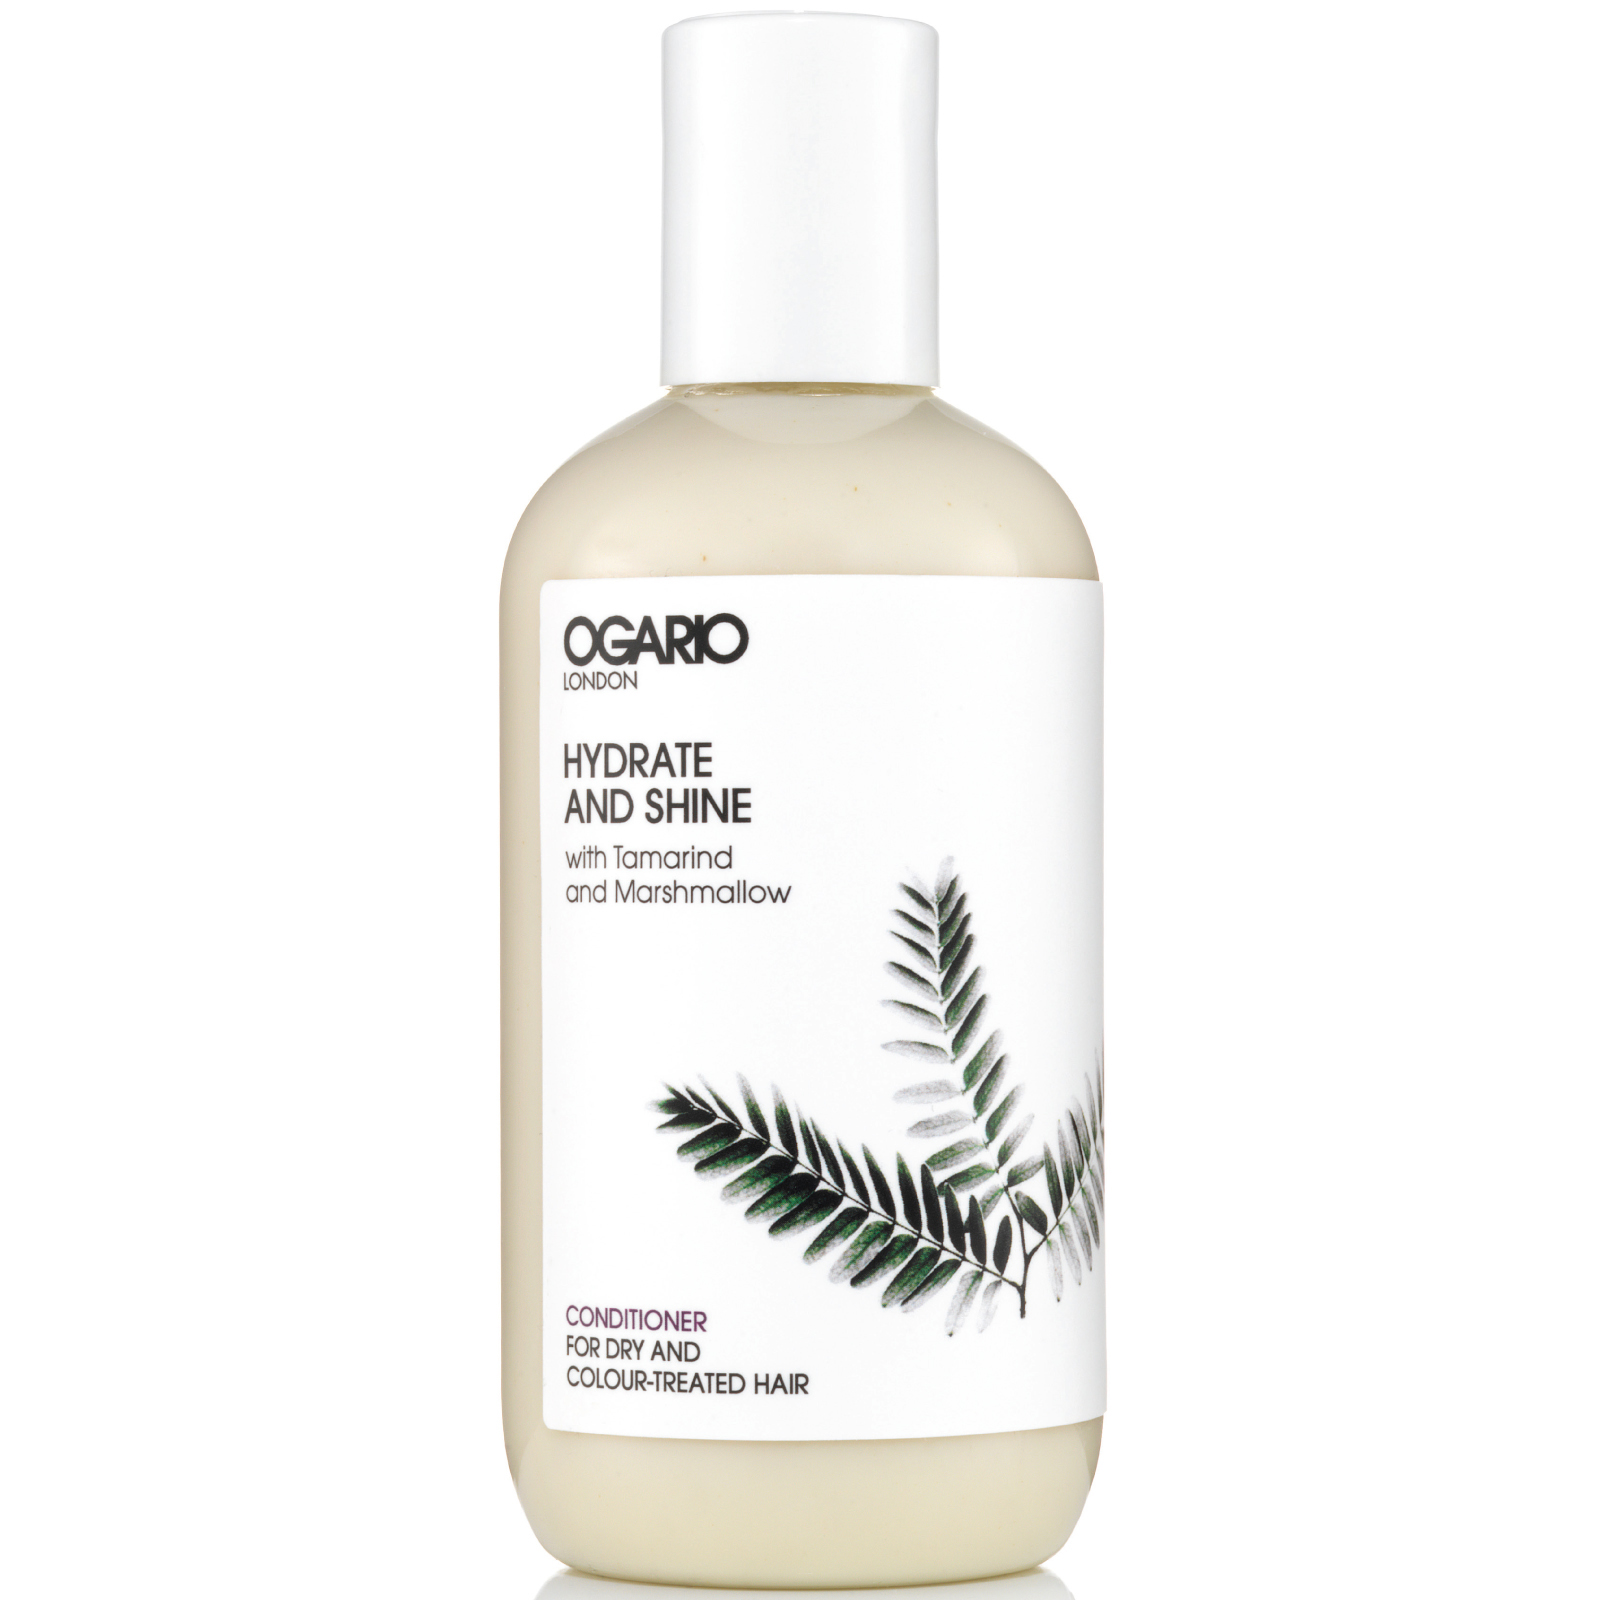 OGARIO Hydrate and Shine Natural Conditioner; Prep Dry Hair for Styling